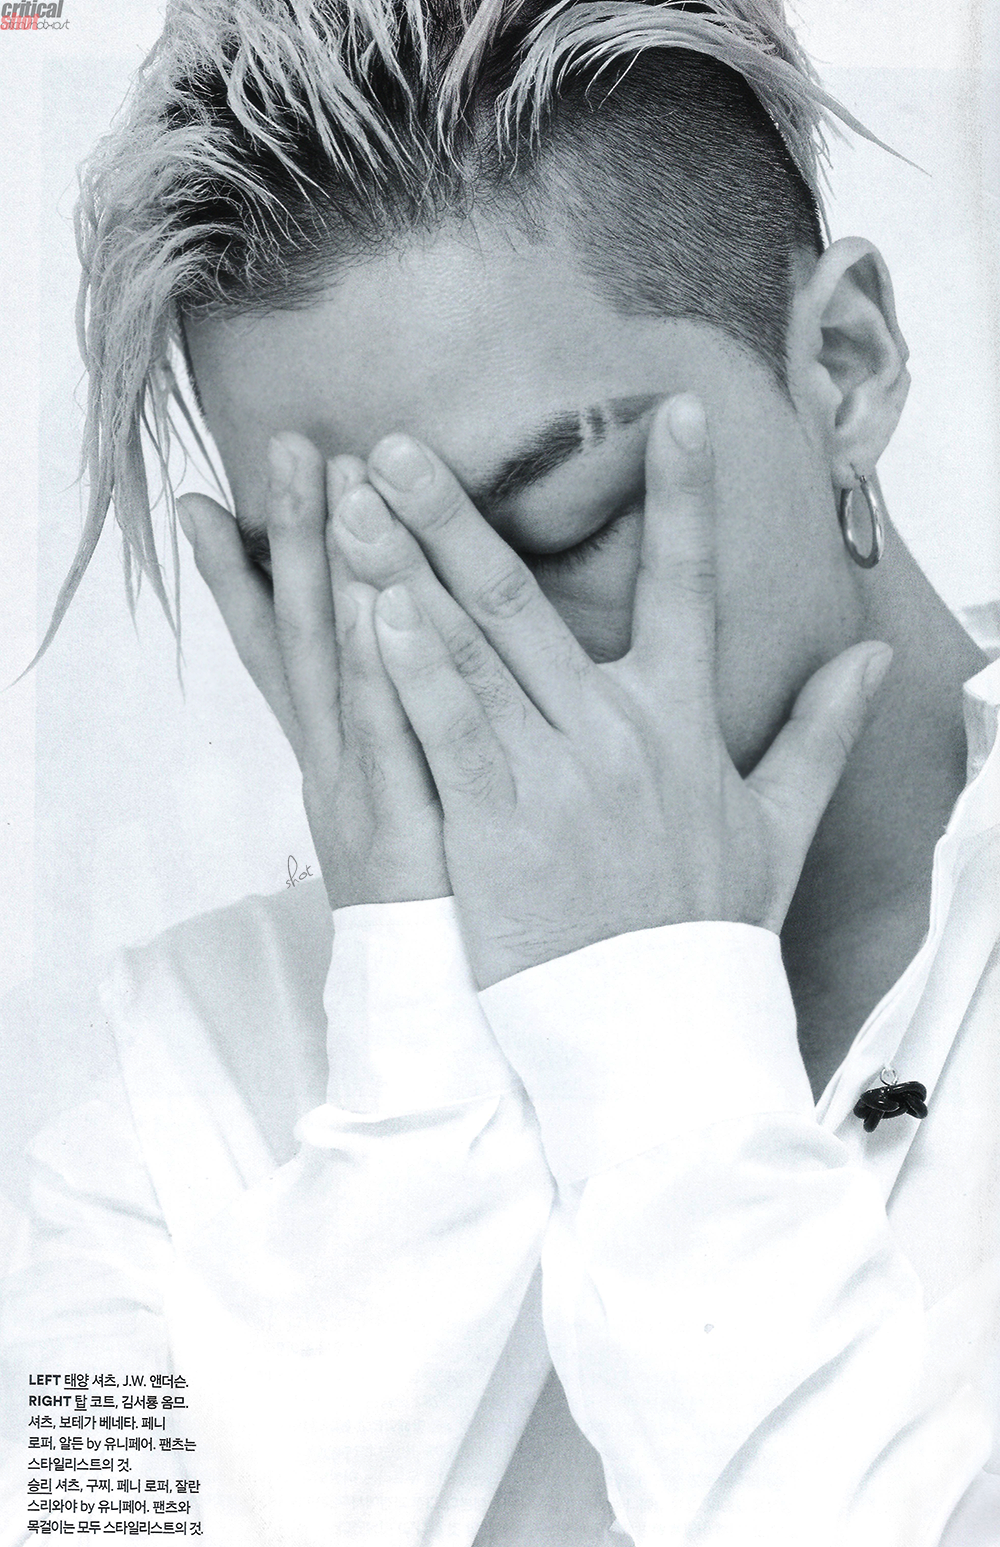 Big Bang - GQ Korea - Aug2015 - criticalshot819 - 12.jpg